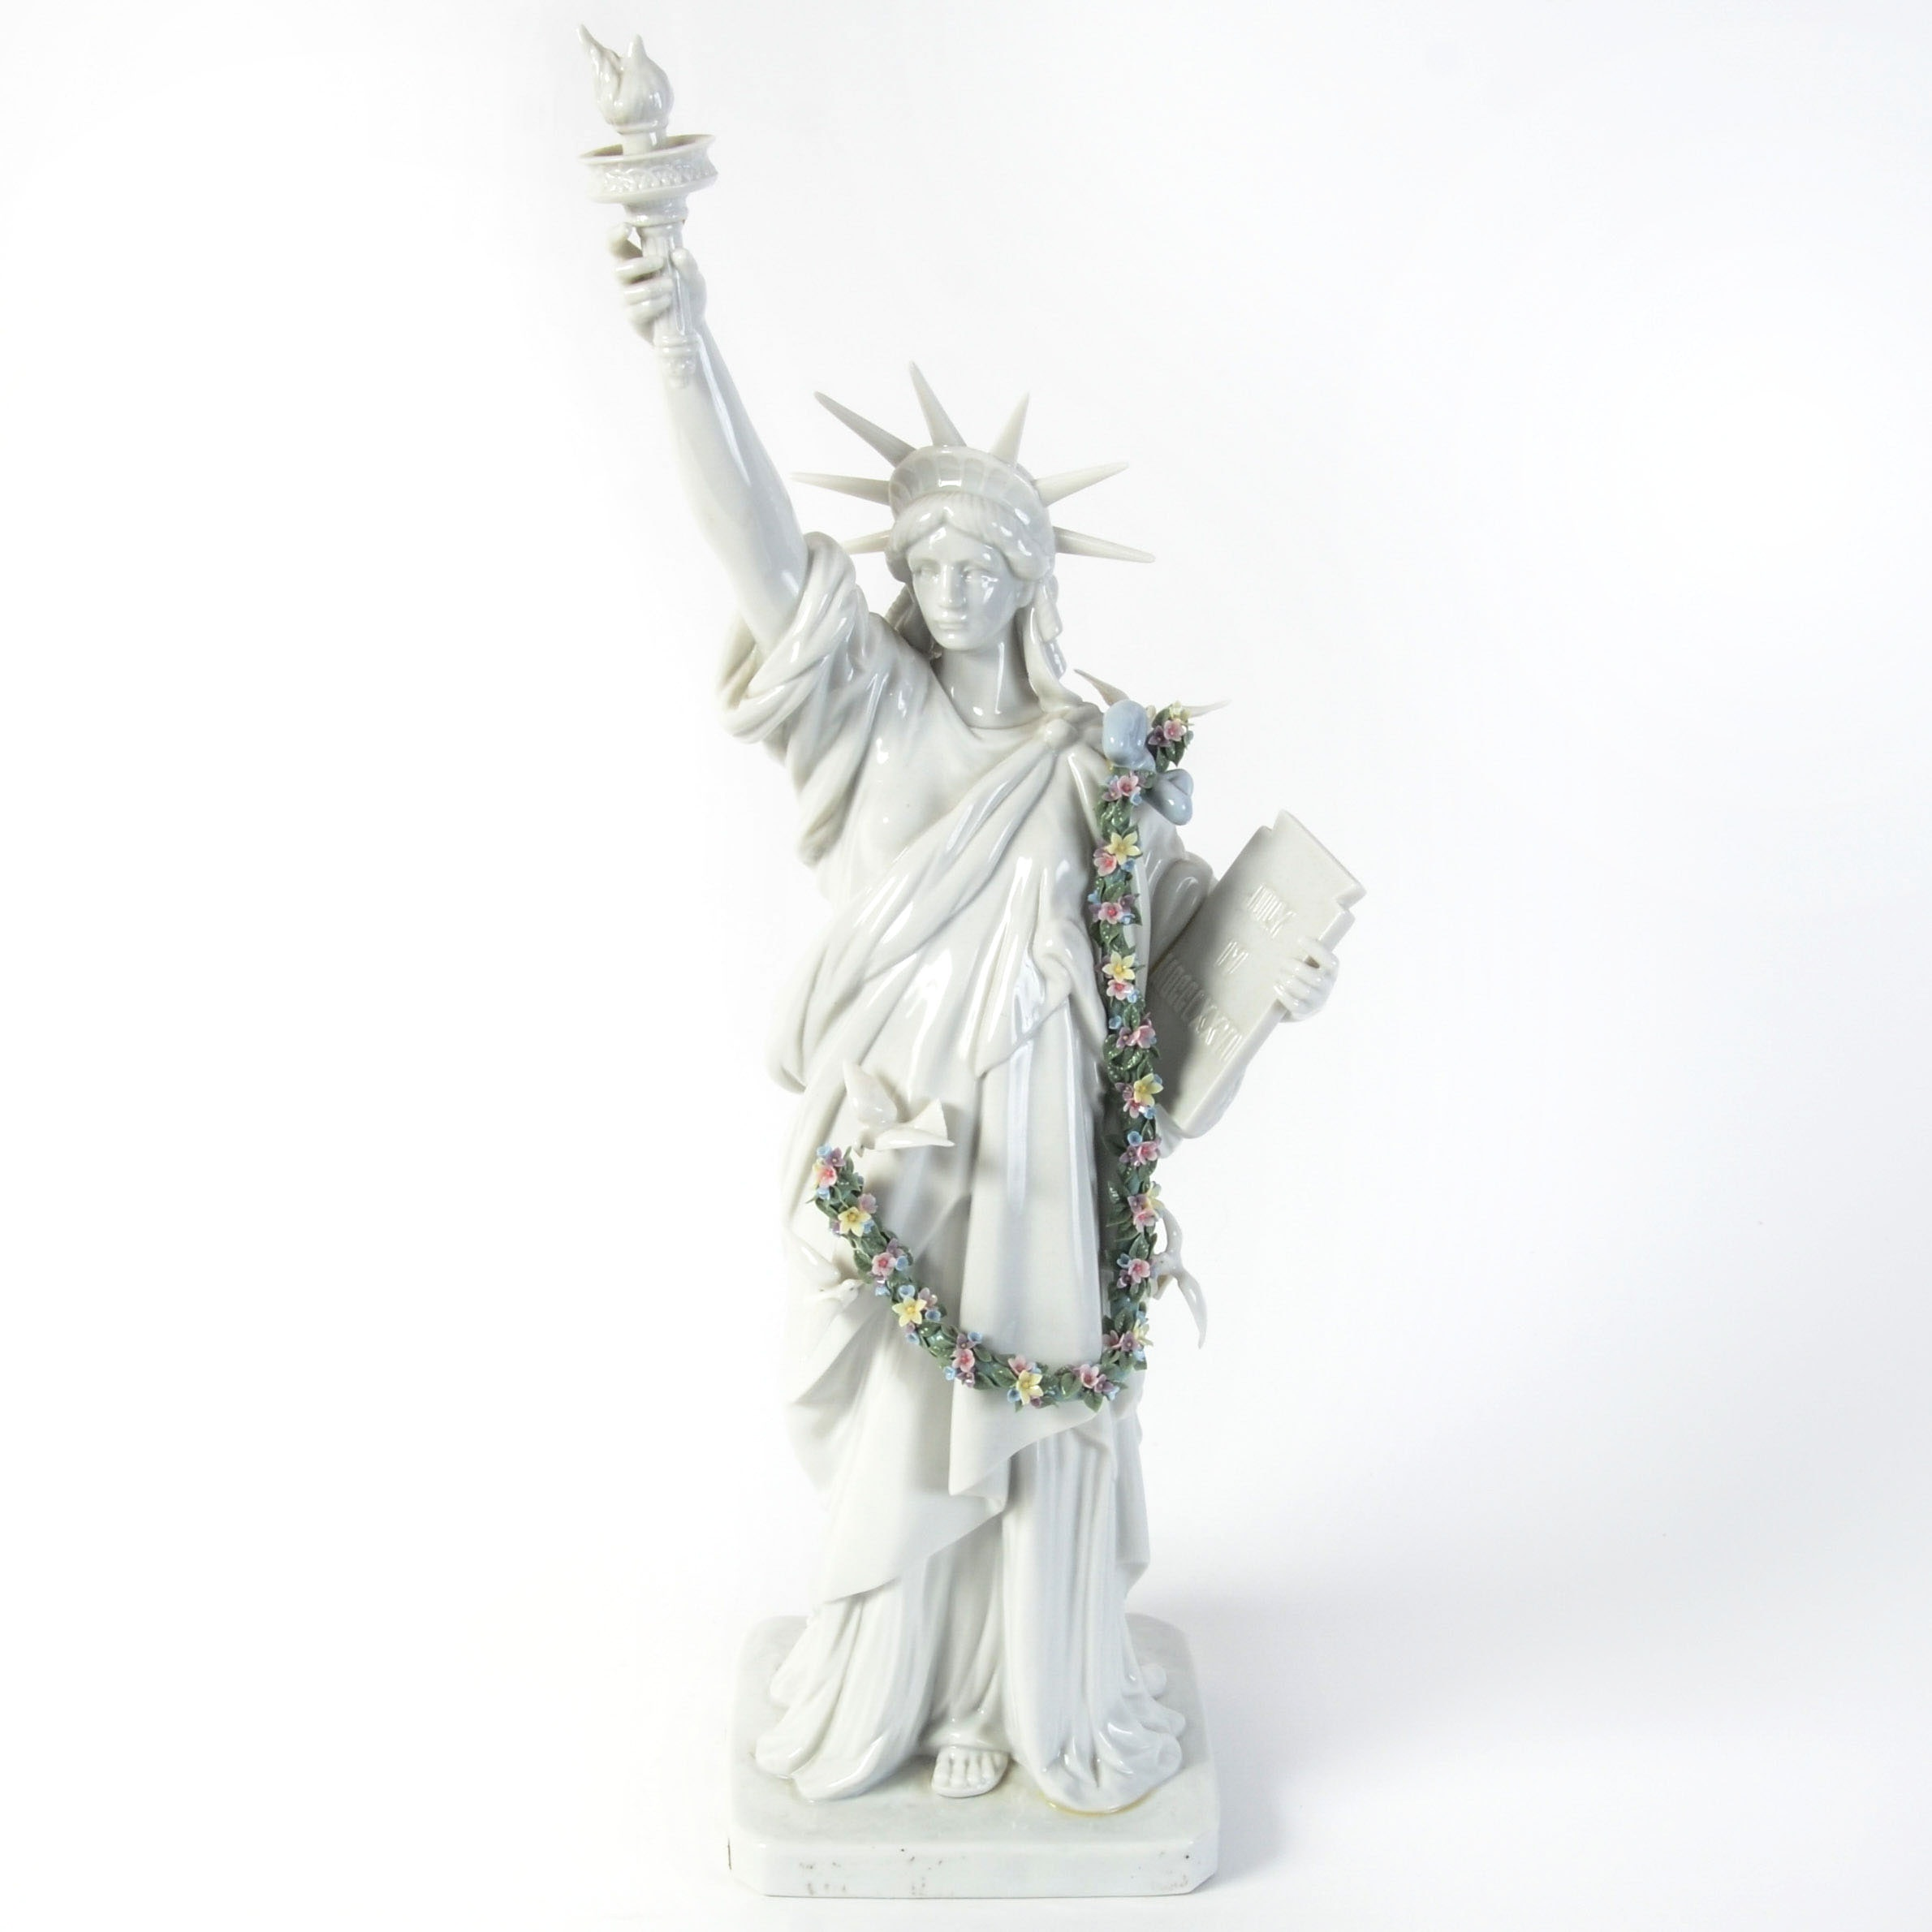 Statue of Liberty Lladro 7563